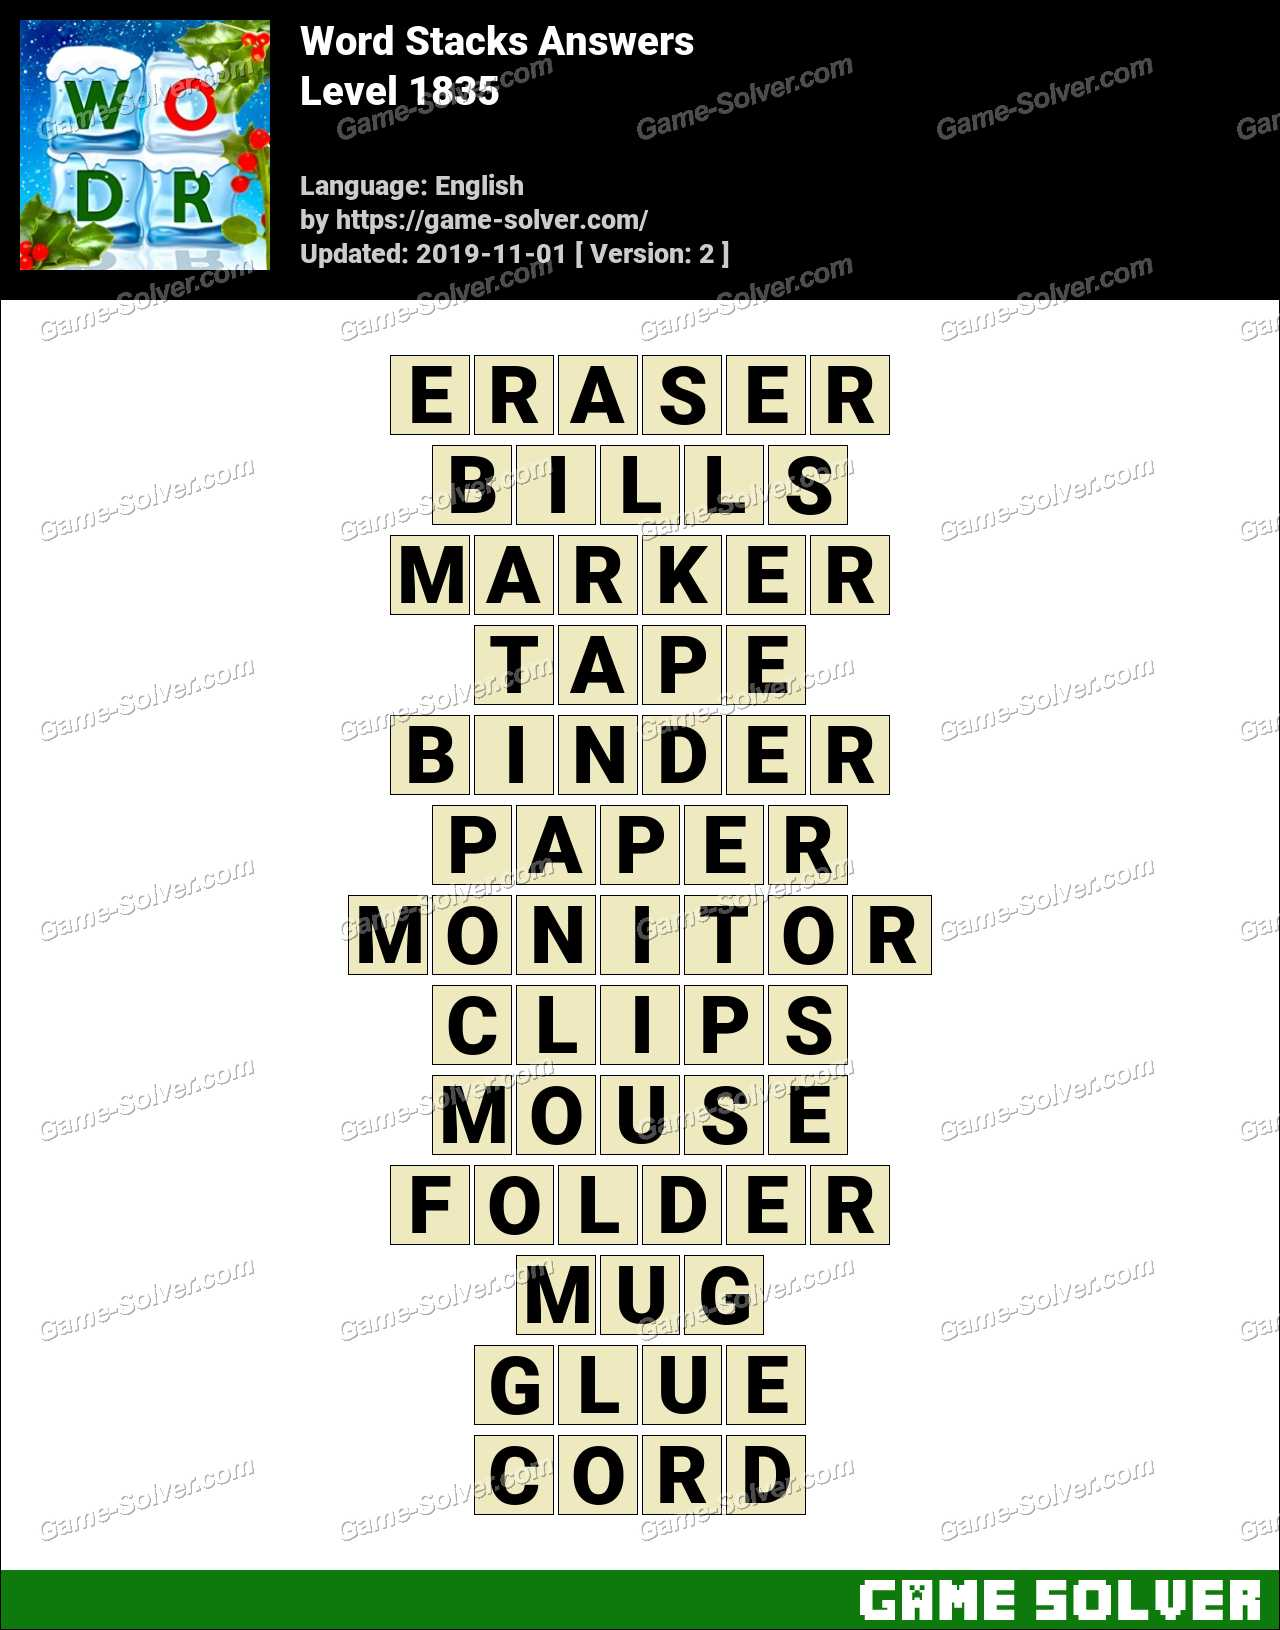 Word Stacks Level 1835 Answers